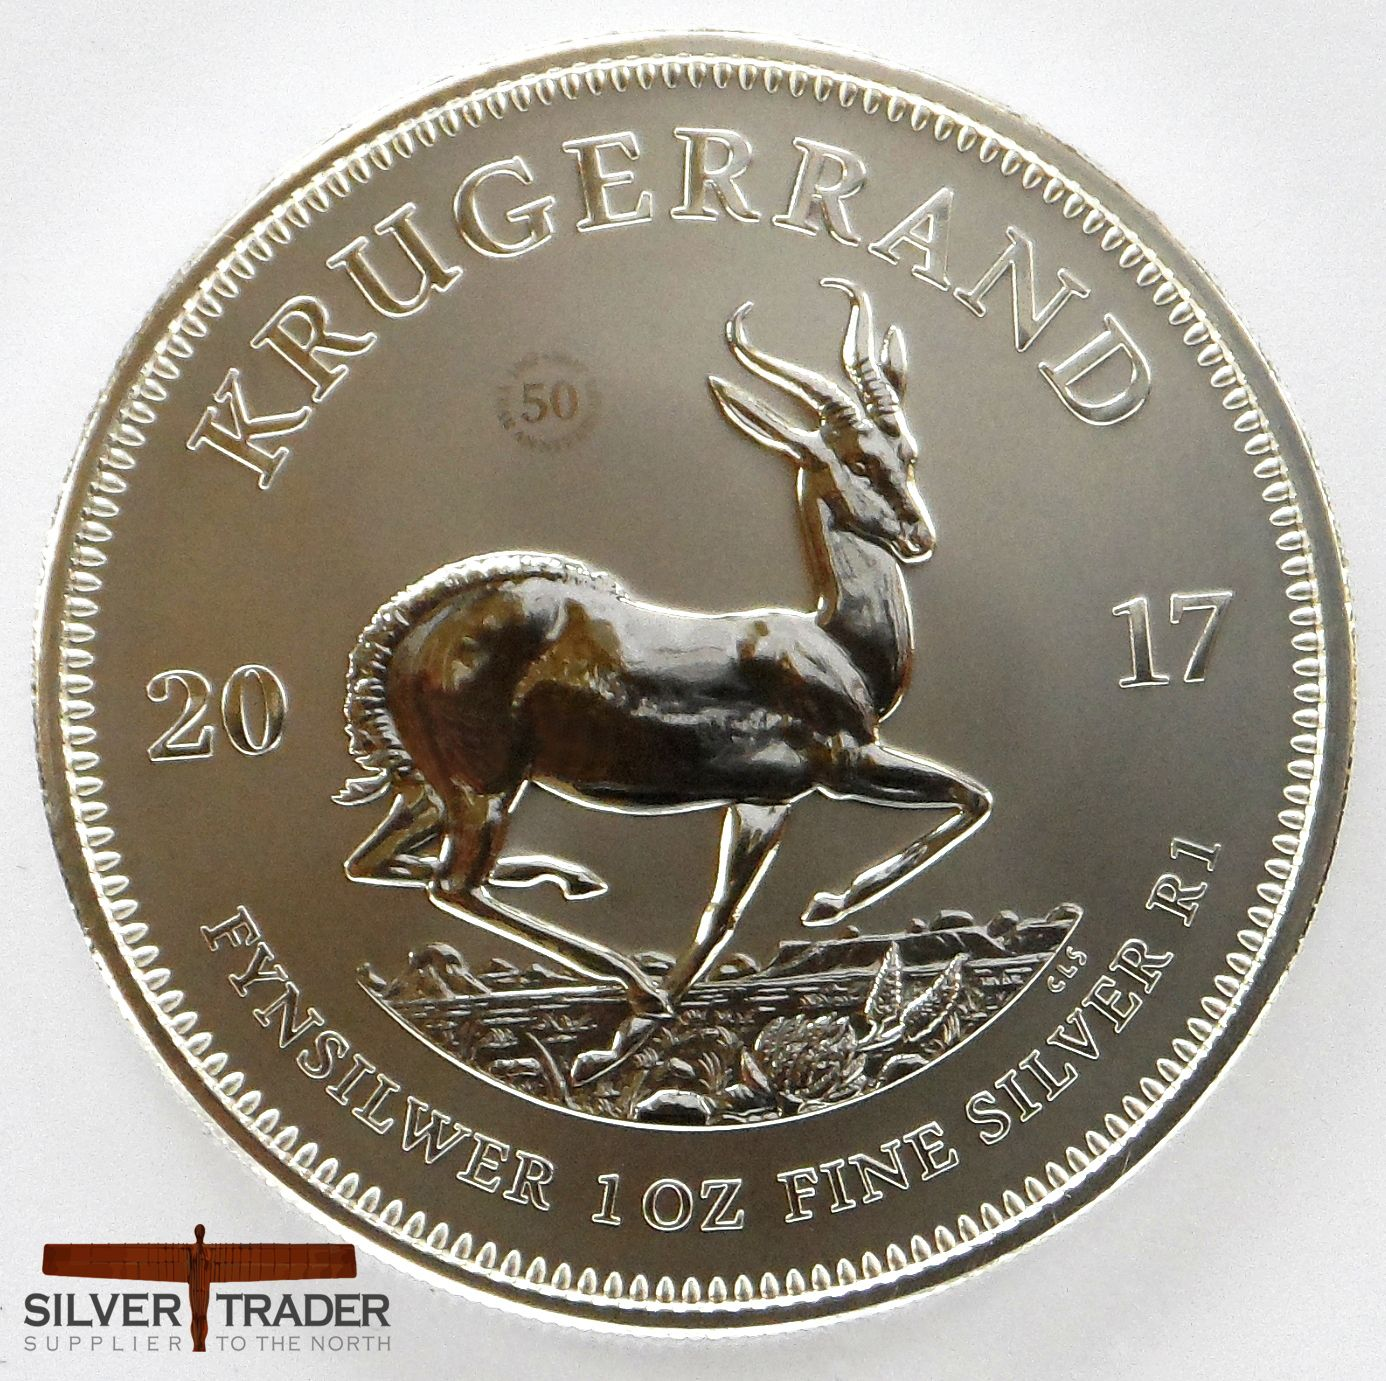 2017 South African Krugerrand 1 Oz Premium Silver Bullion Coin Silver Bullion Coins Silver Bullion Bullion Coins